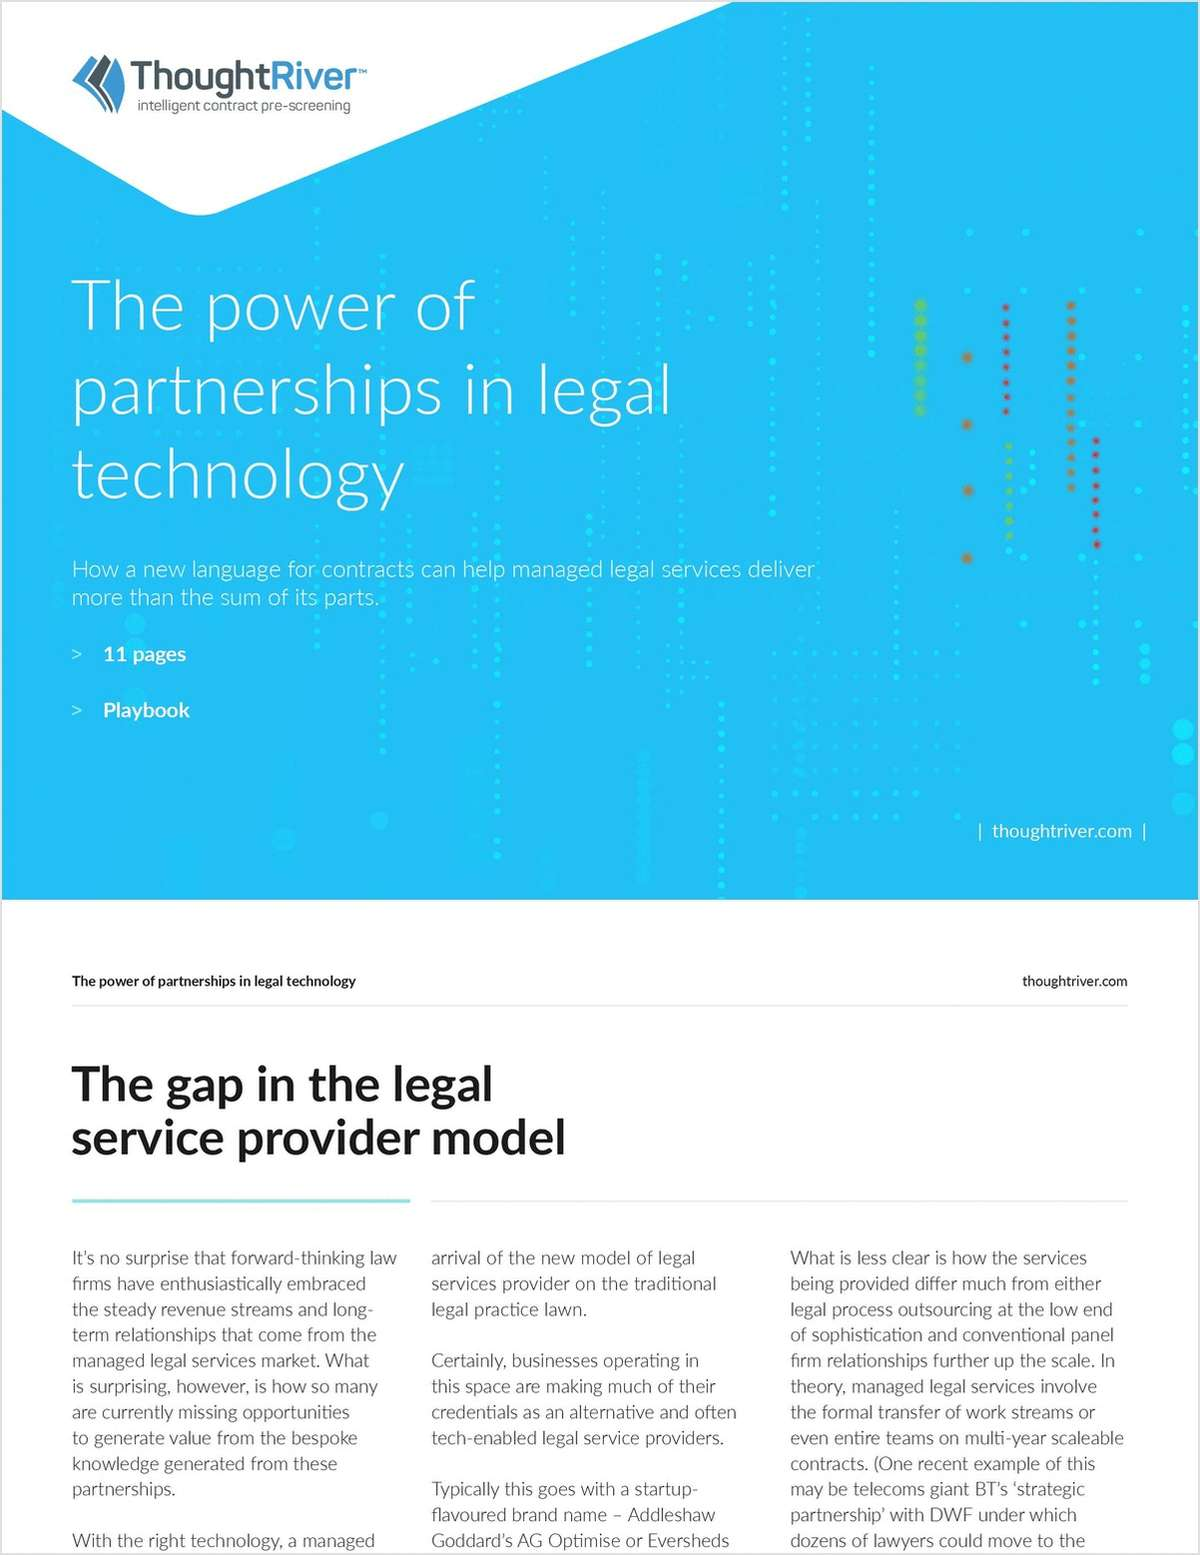 The Power of Partnerships in Legal Technology